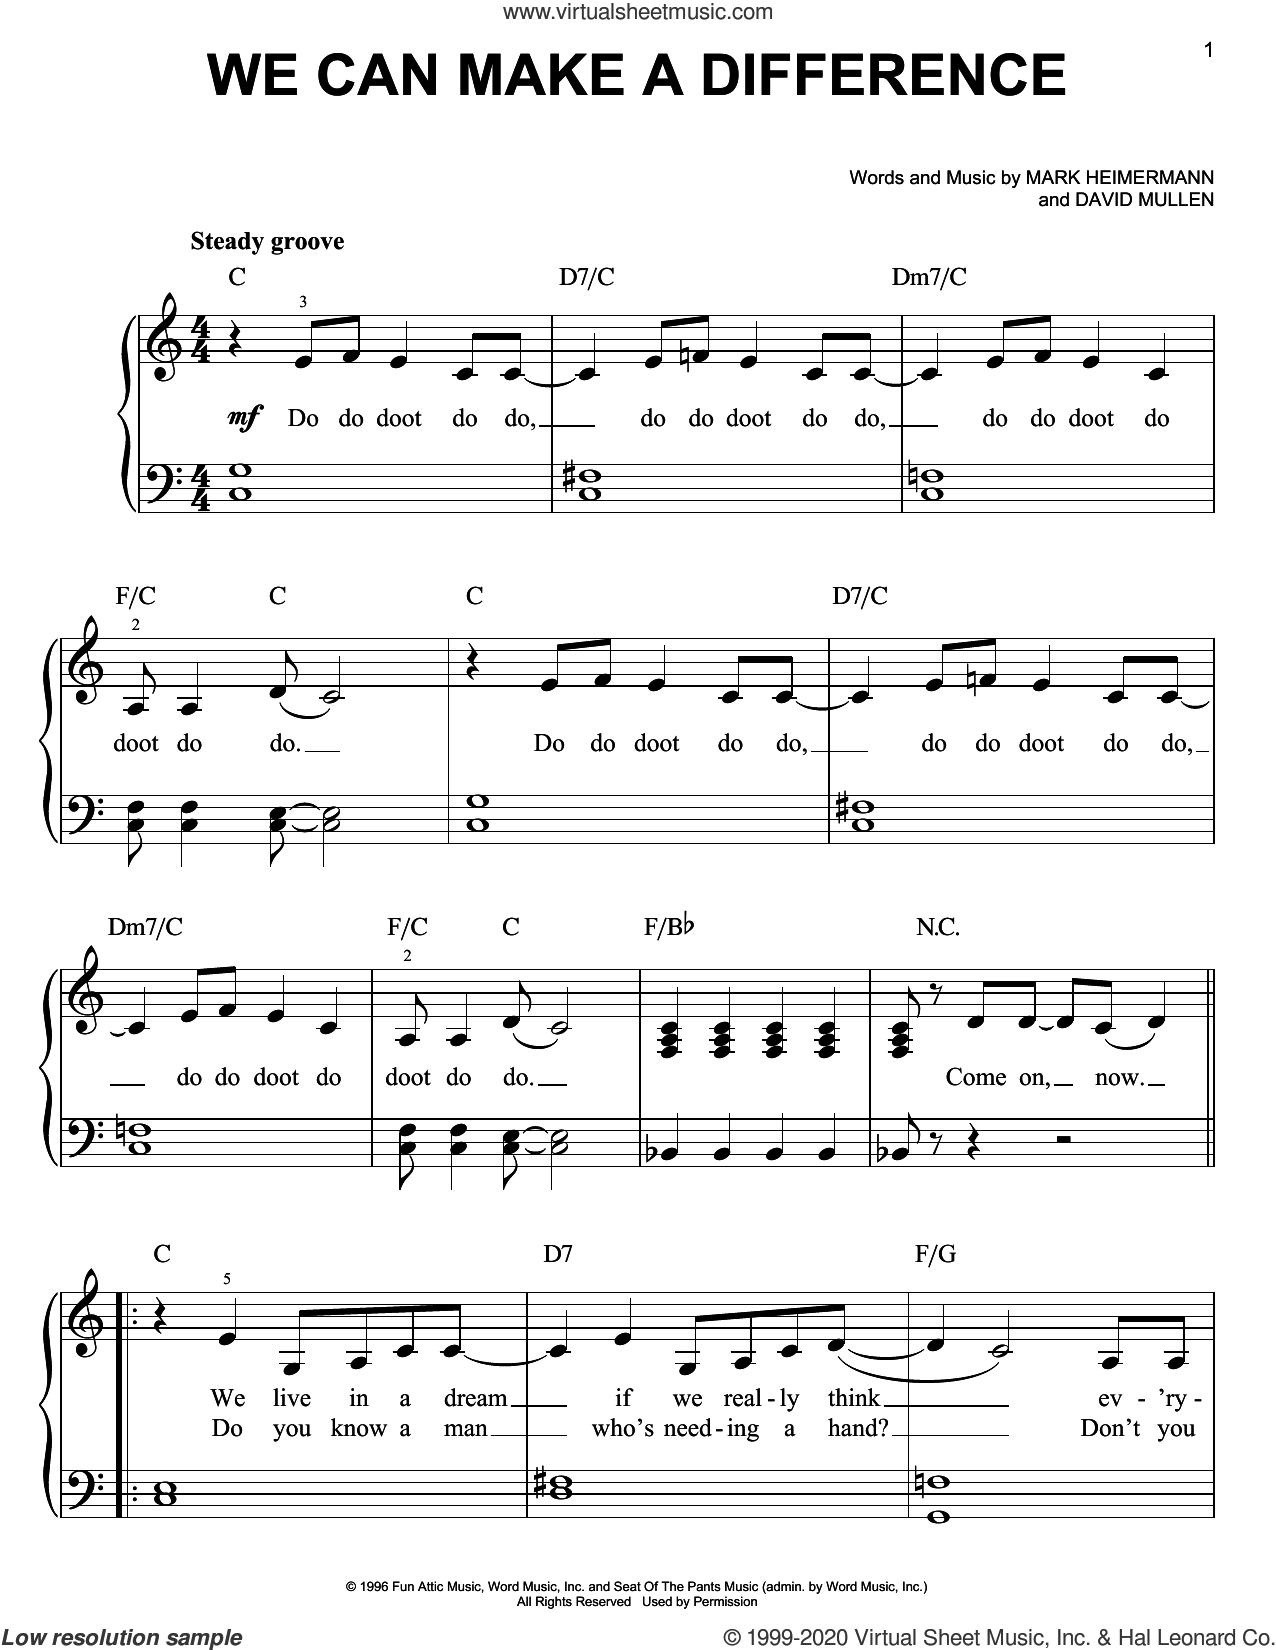 We Can Make A Difference sheet music for piano solo by Jaci Velasquez, David Mullen and Mark Heimermann, easy skill level